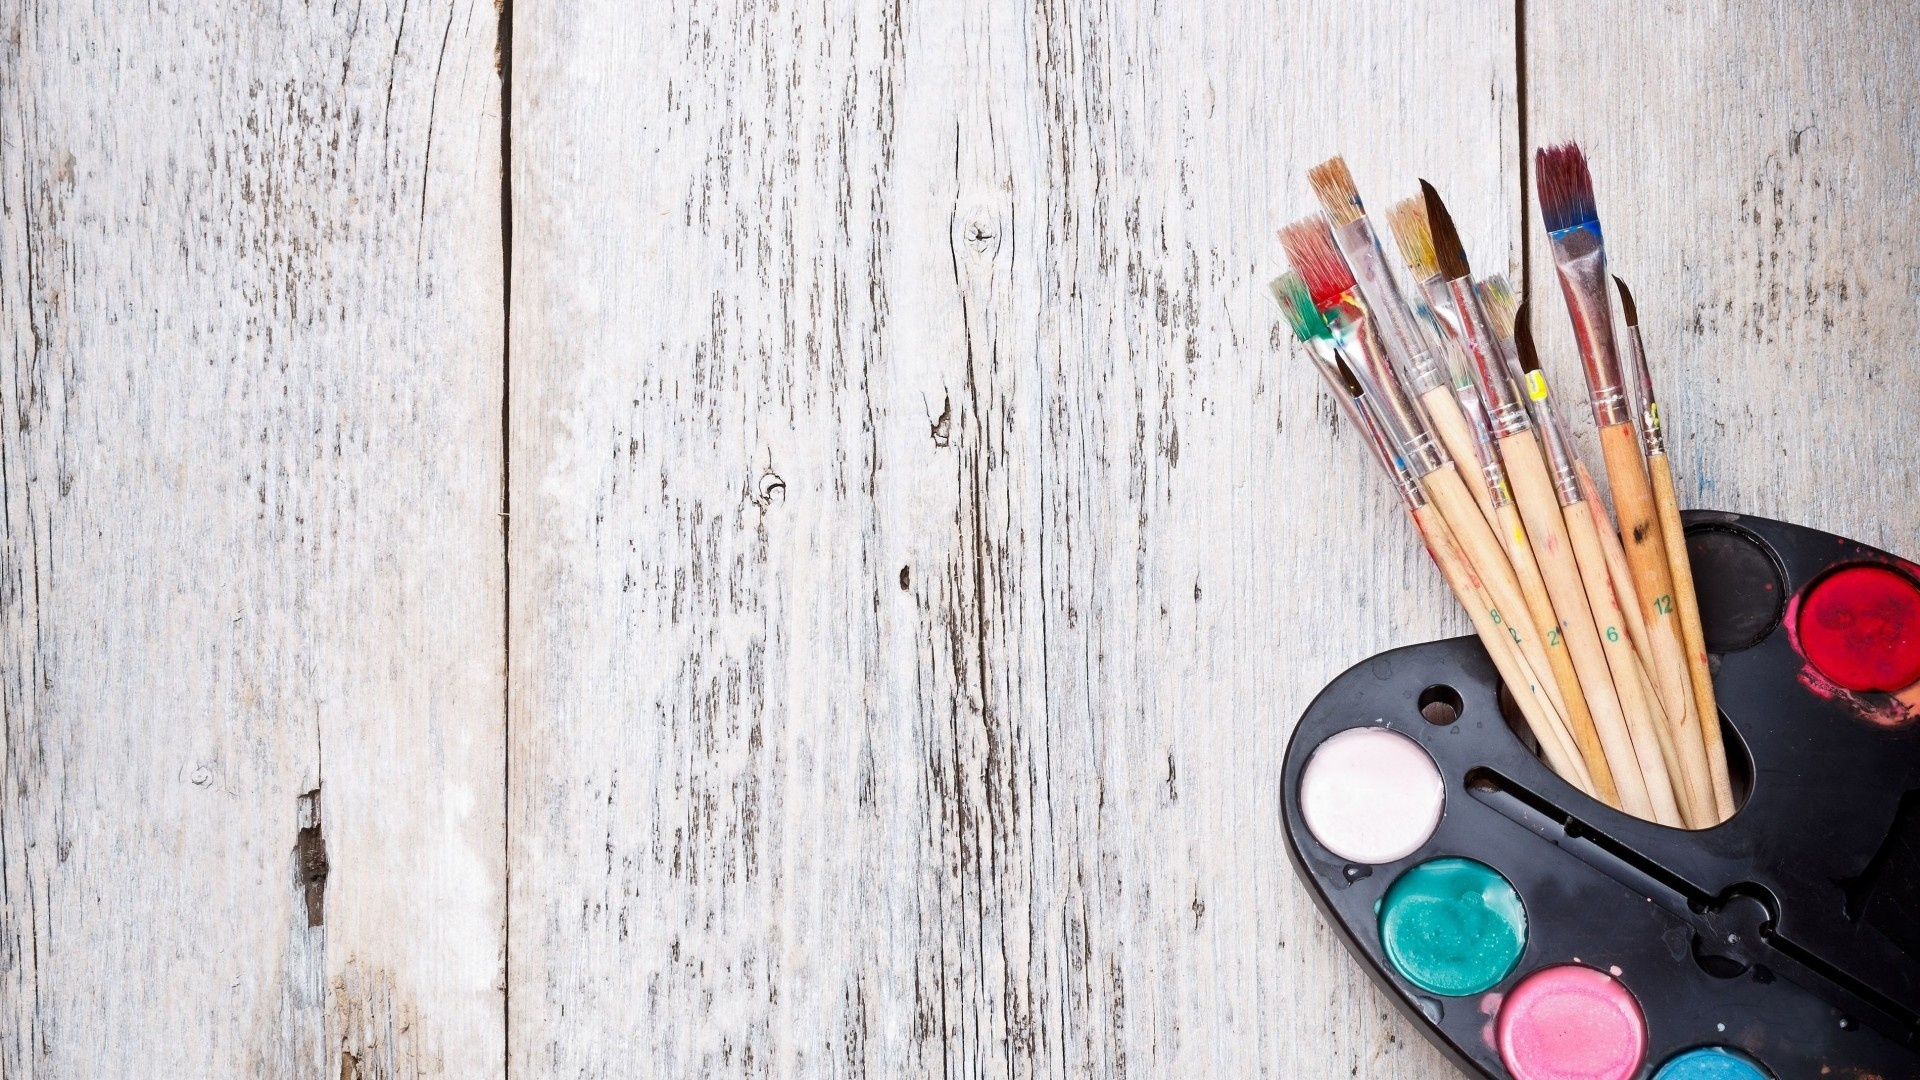 Brushes And Paint Image